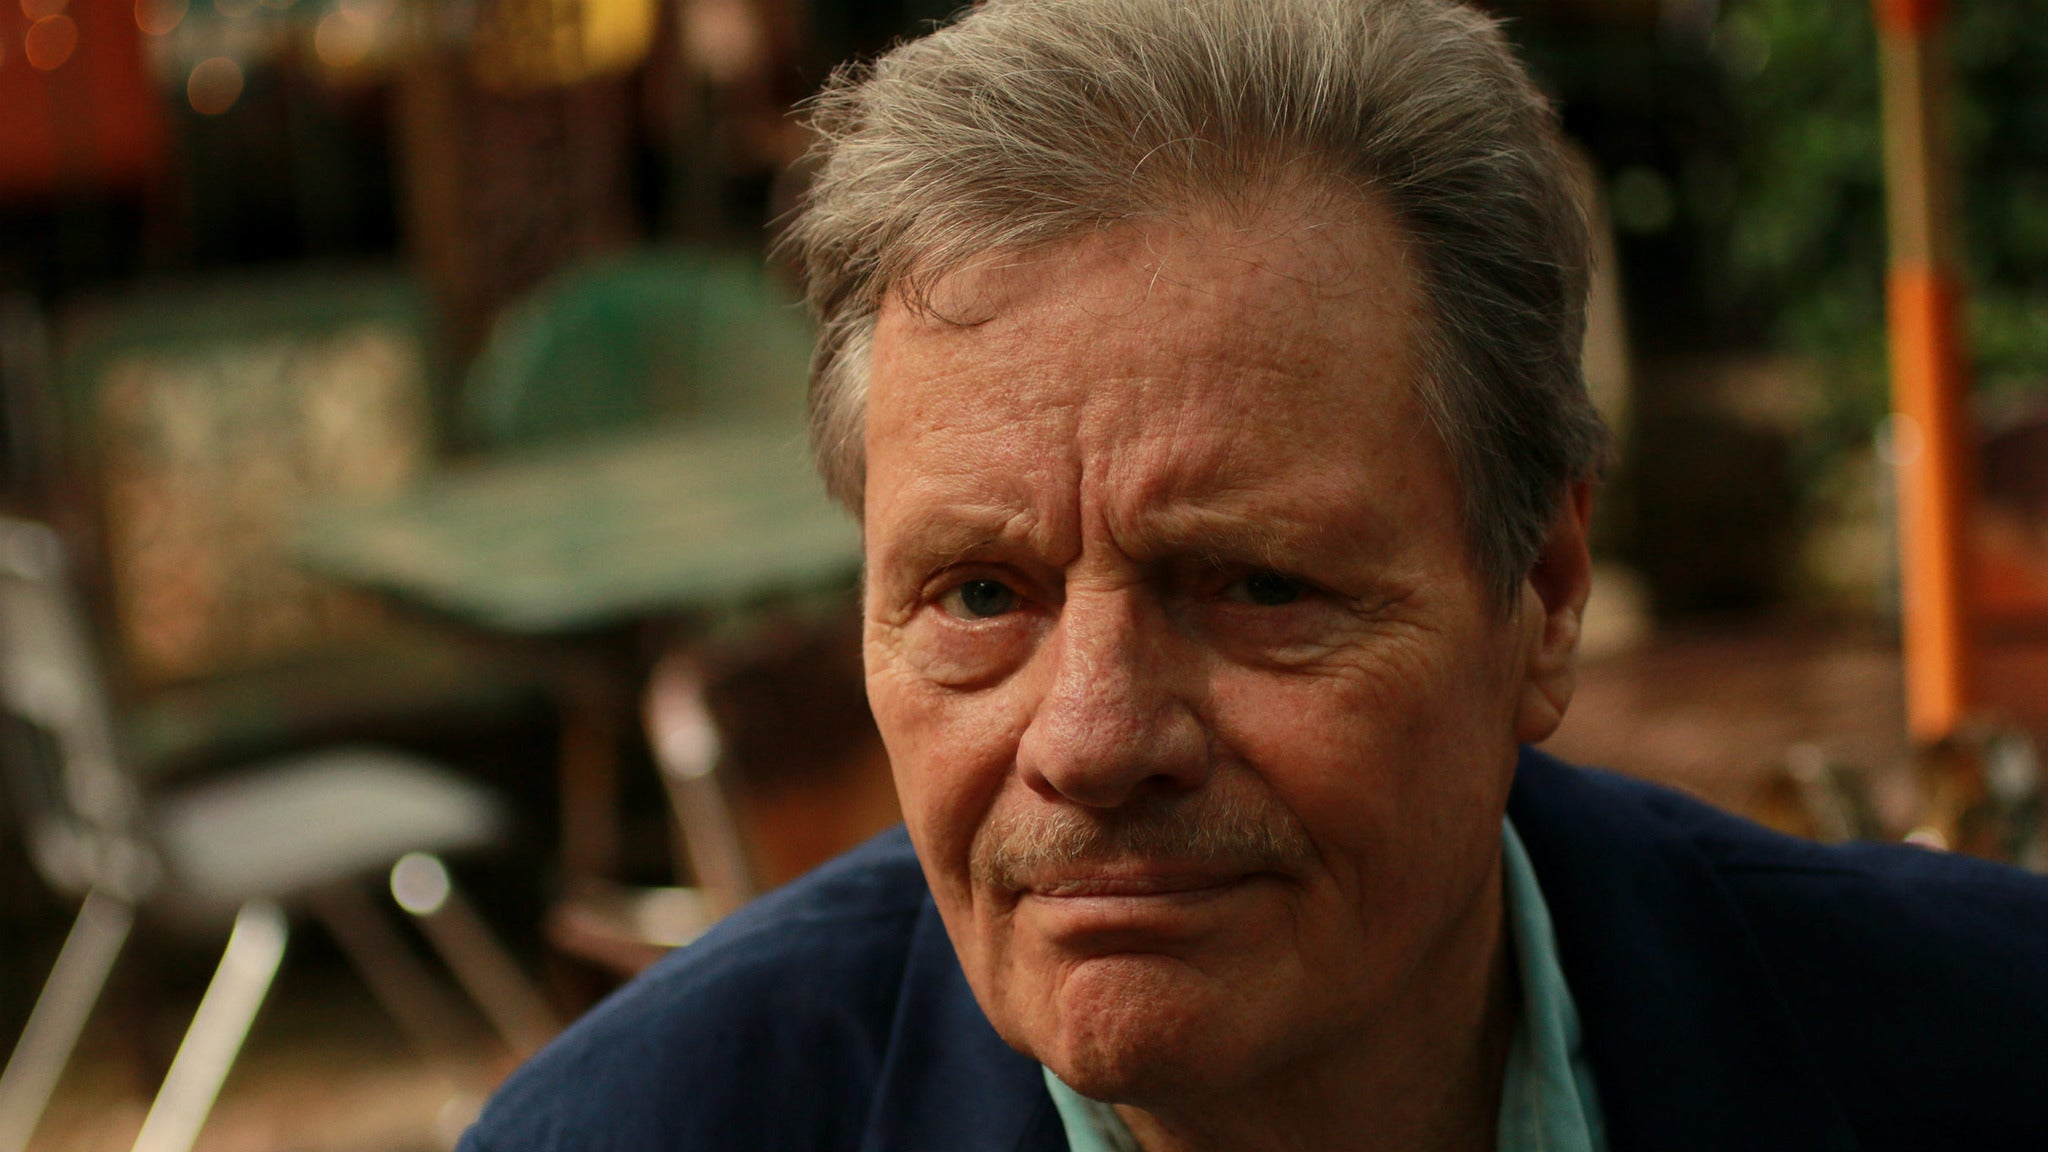 An Evening with Delbert McClinton at HOYT SHERMAN PLACE